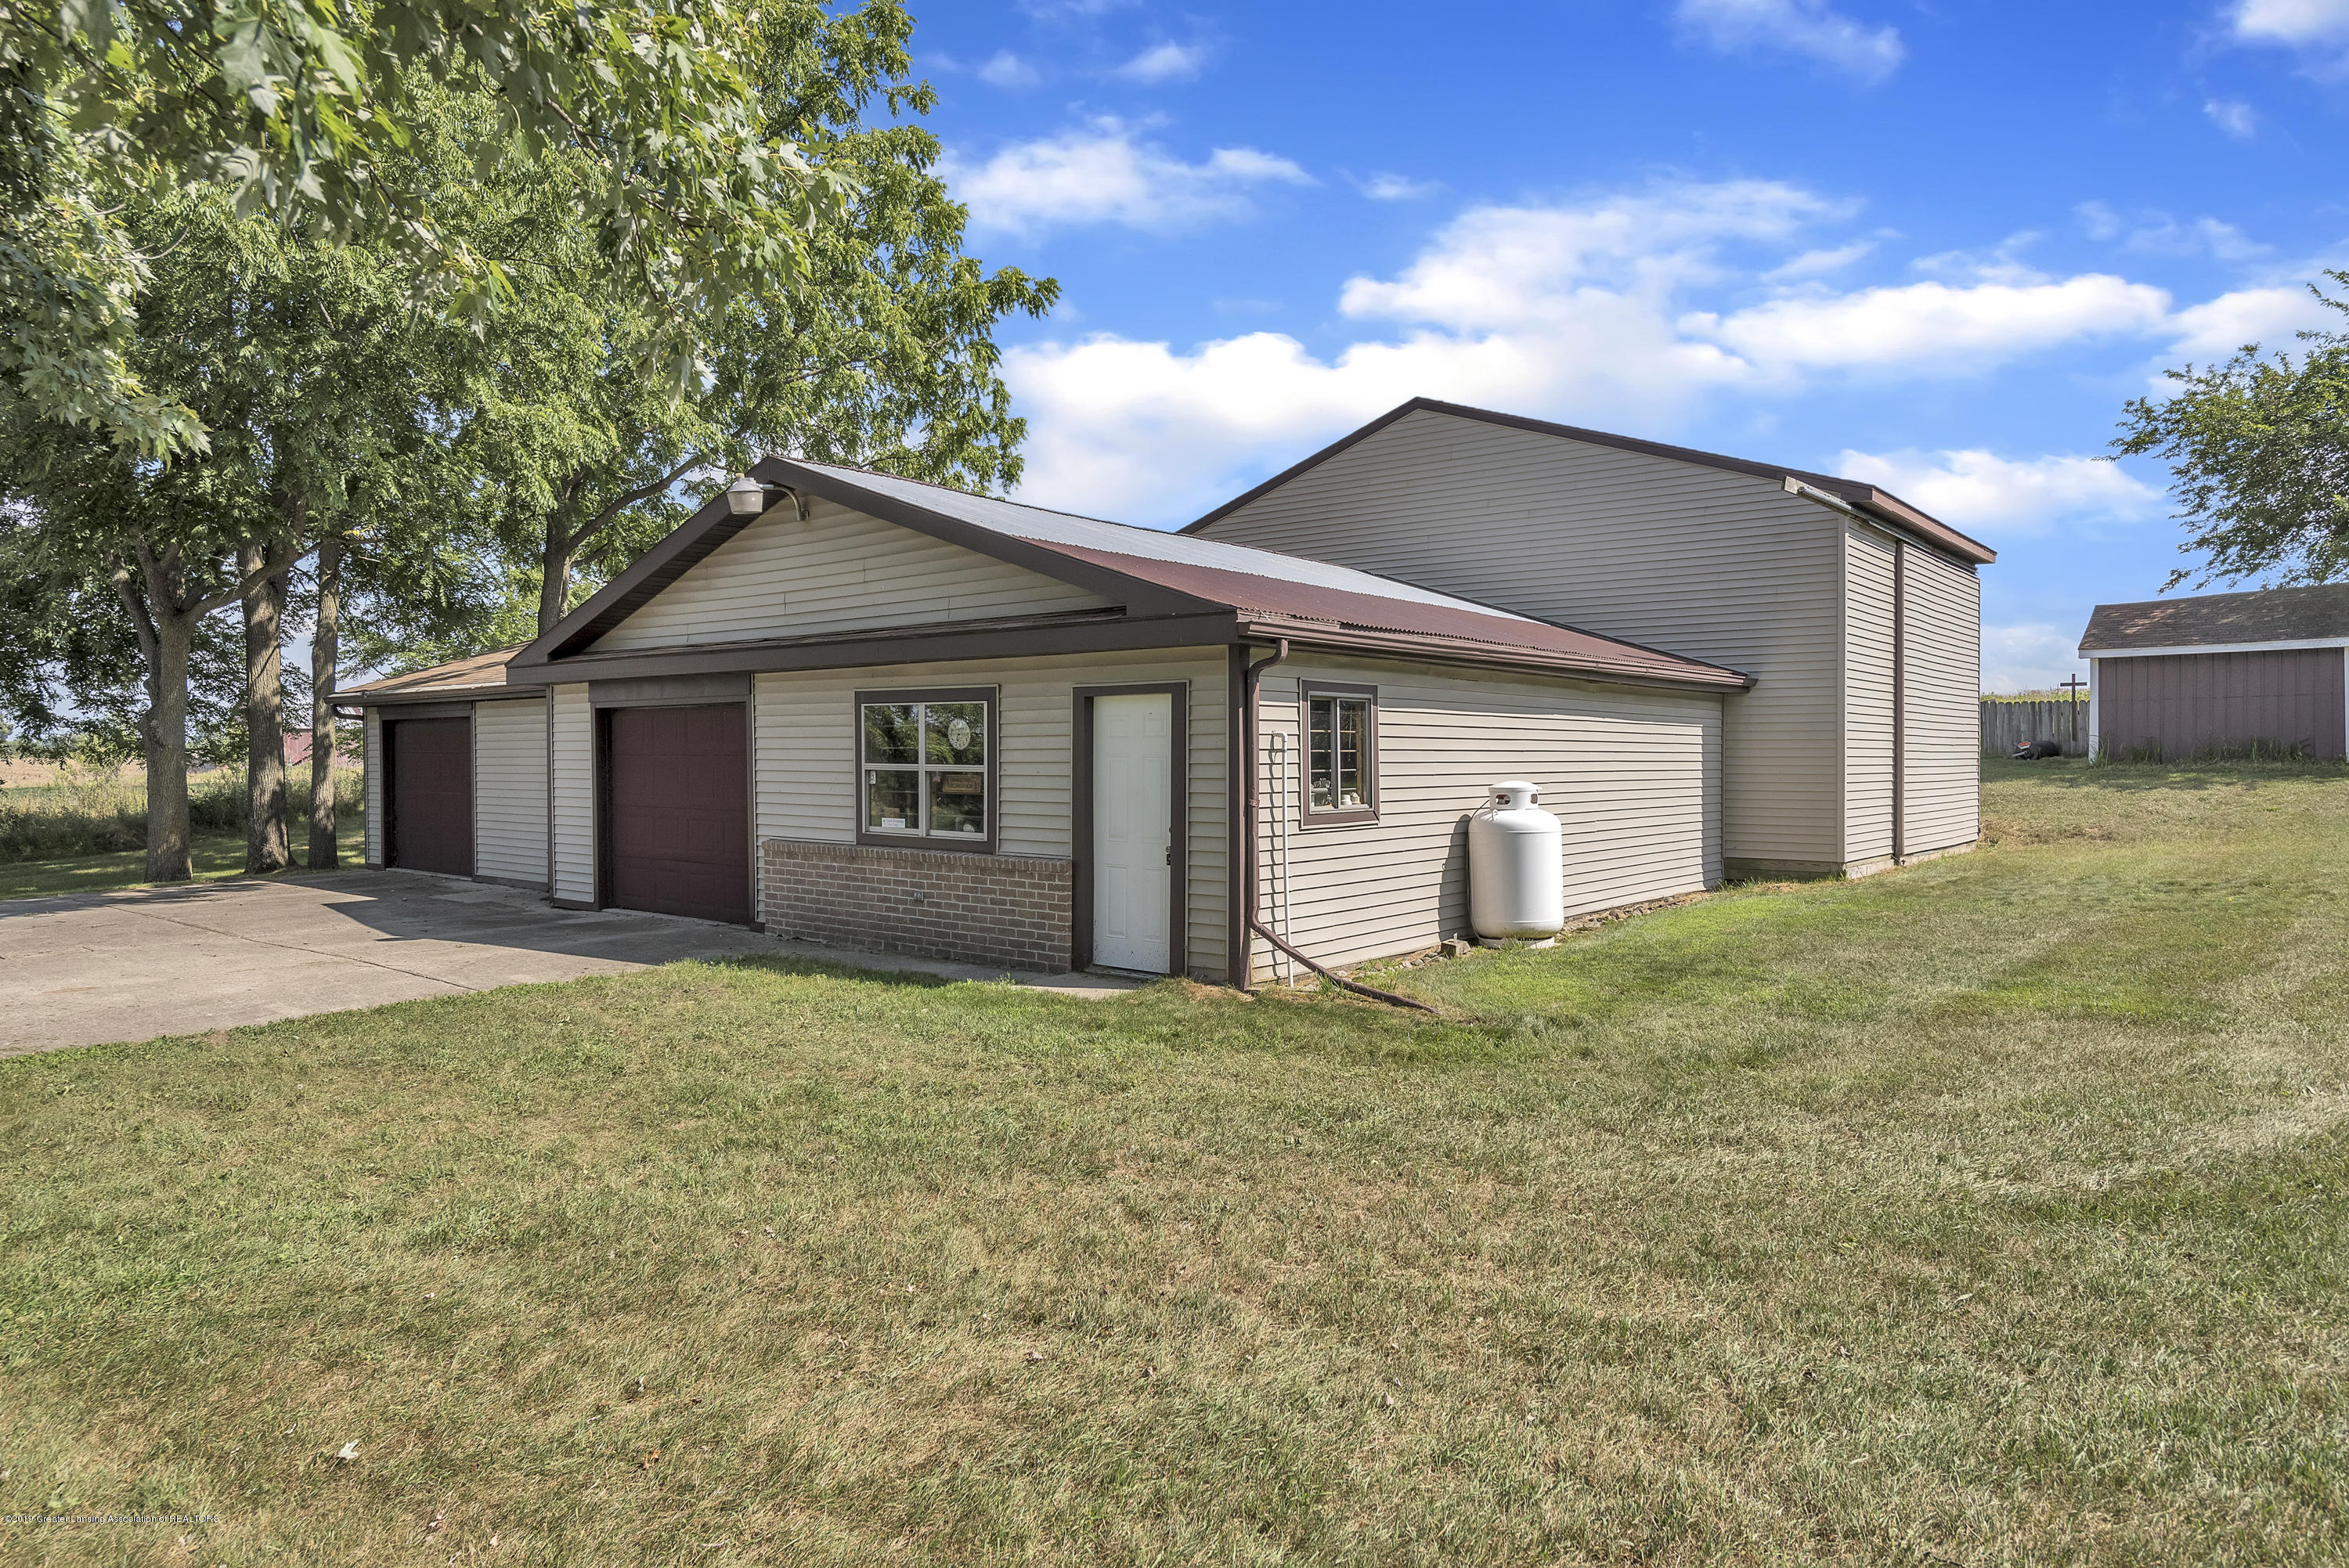 450 Noble Rd - 450-Noble-Rd-Williamston-MI-48895-window - 14